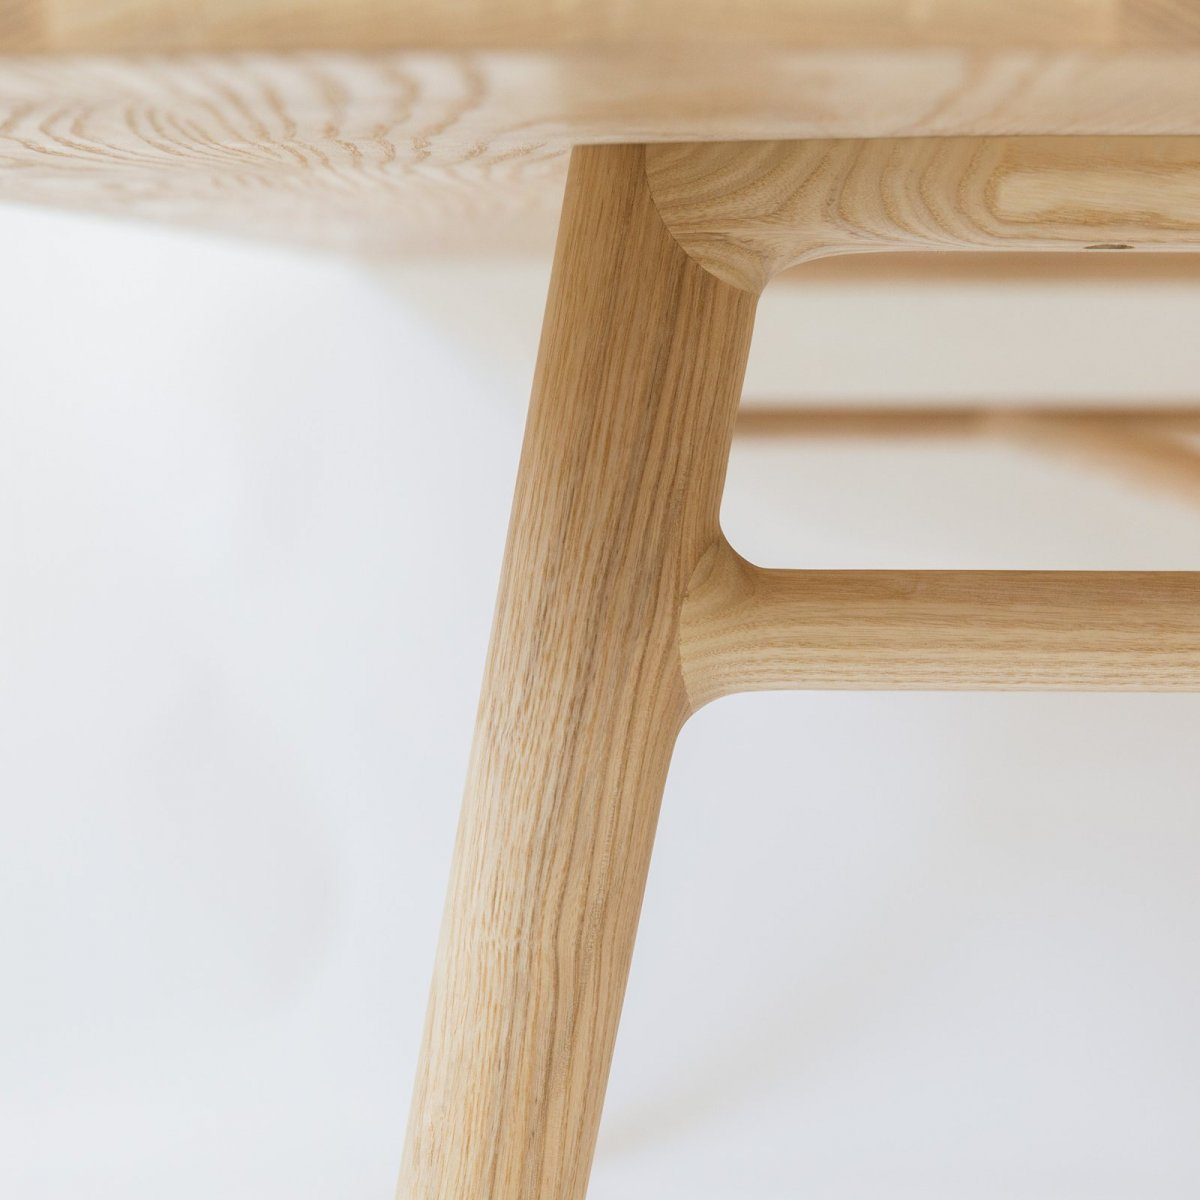 Bough Table, detail.